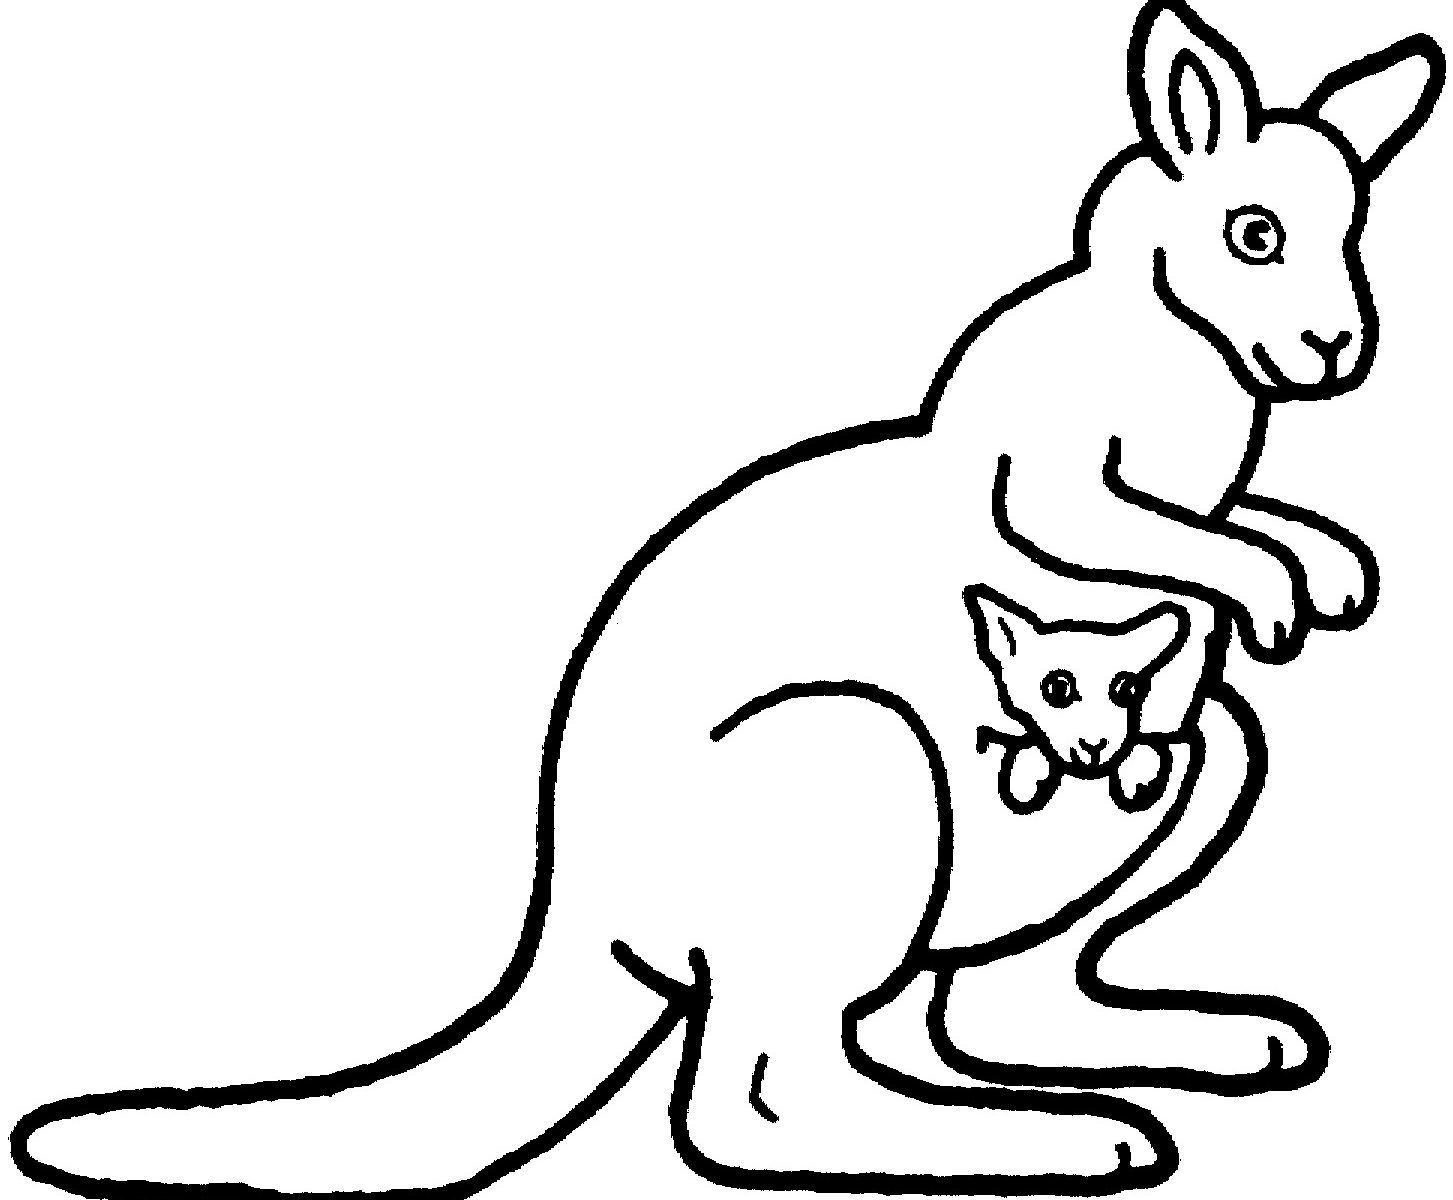 Kangaroo Coloring Pages Preschool Collection Animal Coloring Pages Baby Coloring Pages Coloring Pages